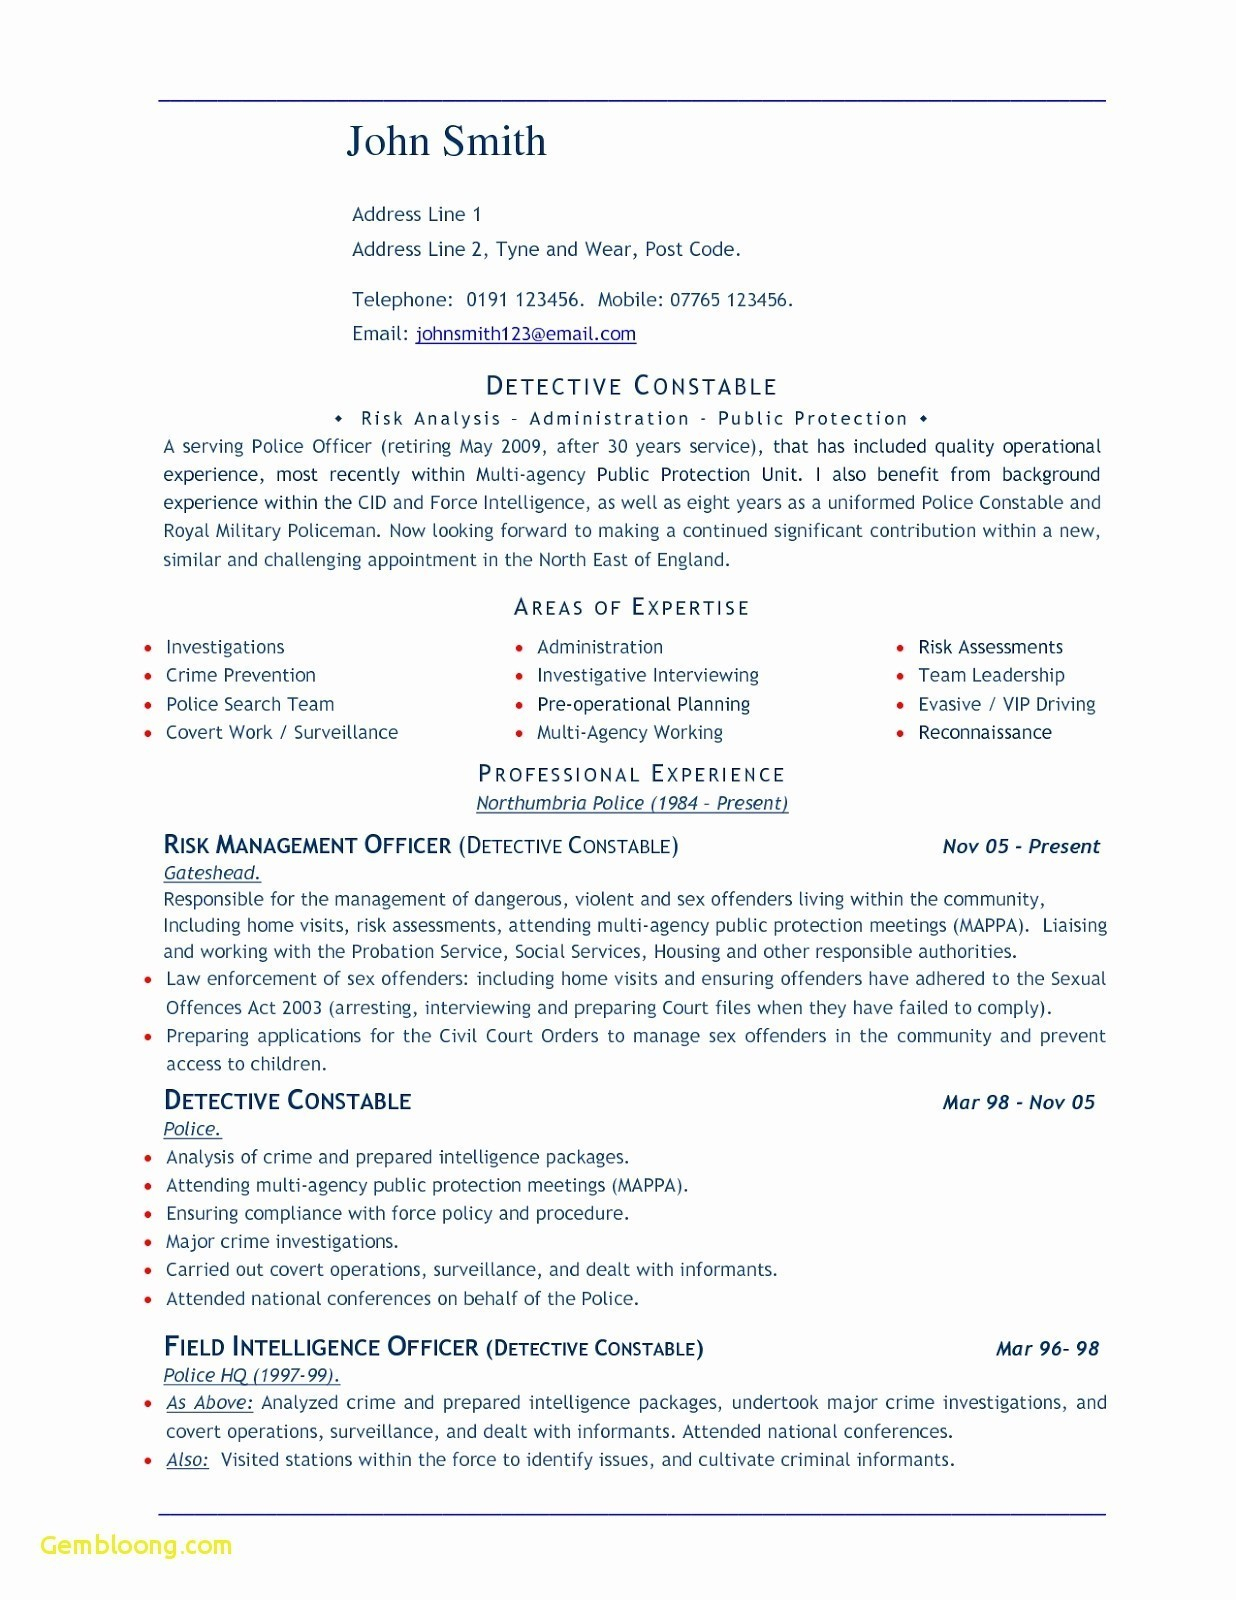 Resume Template for Libreoffice - Microsoft Word Resume Template New 24 Resume Template Libreoffice